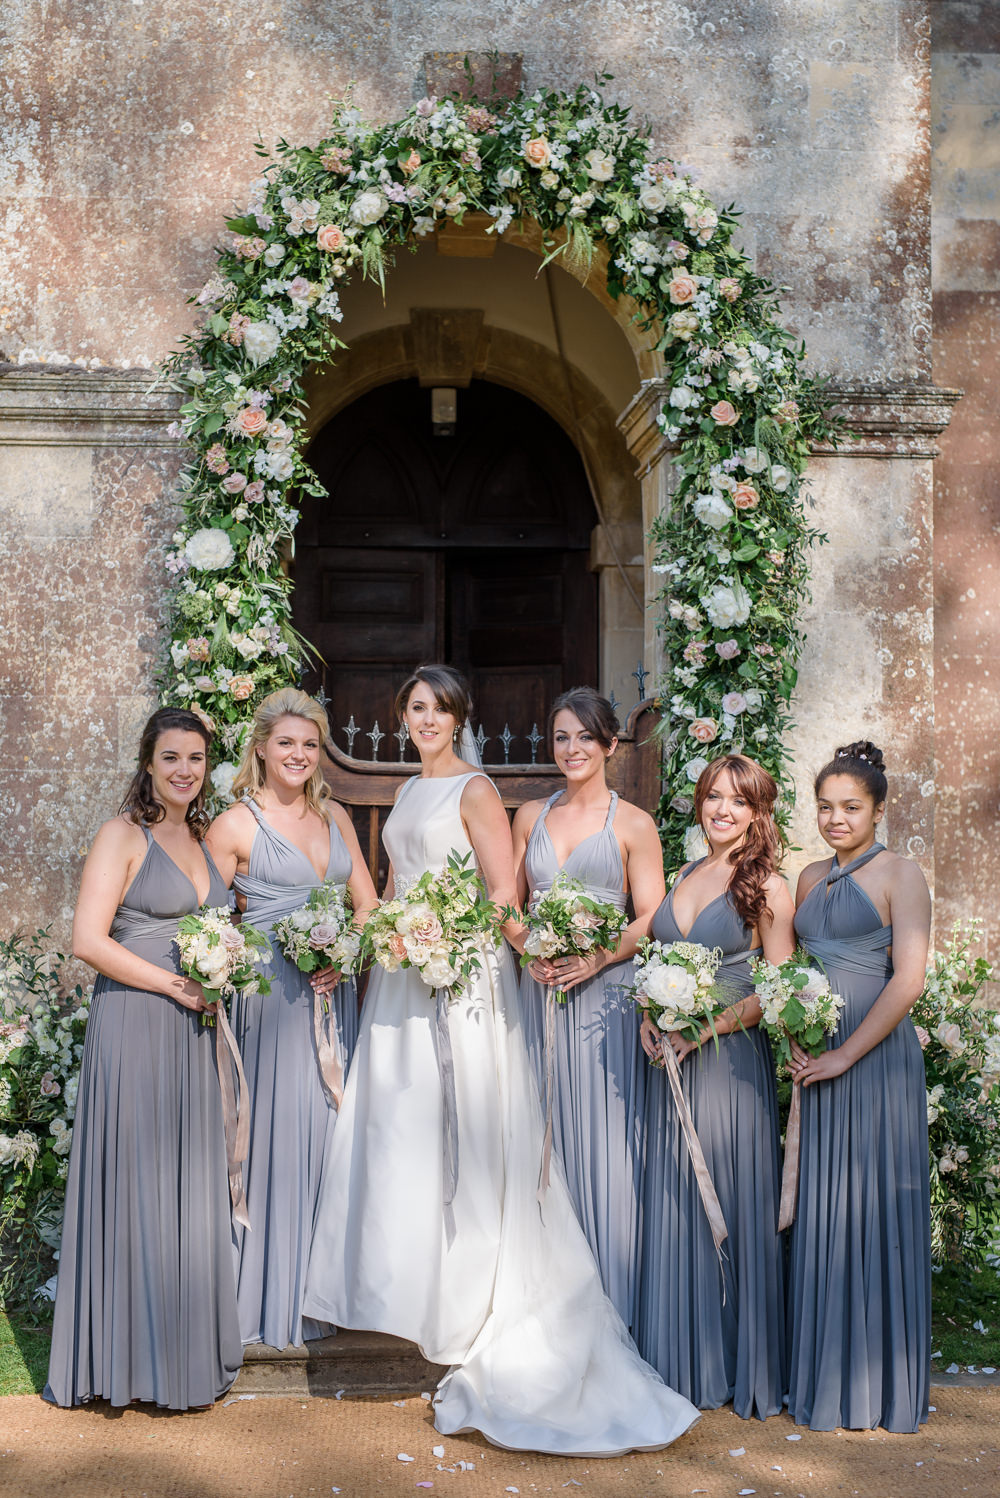 Bride Bridal A Line Dress Straps Sleeveless Silk Boat Neck Veil Entrance Archway Floral Flowers Bouquet Silk Ribbon Bridesmaids Multiway Grey Platinum Babington House Wedding Ria Mishaal Photography